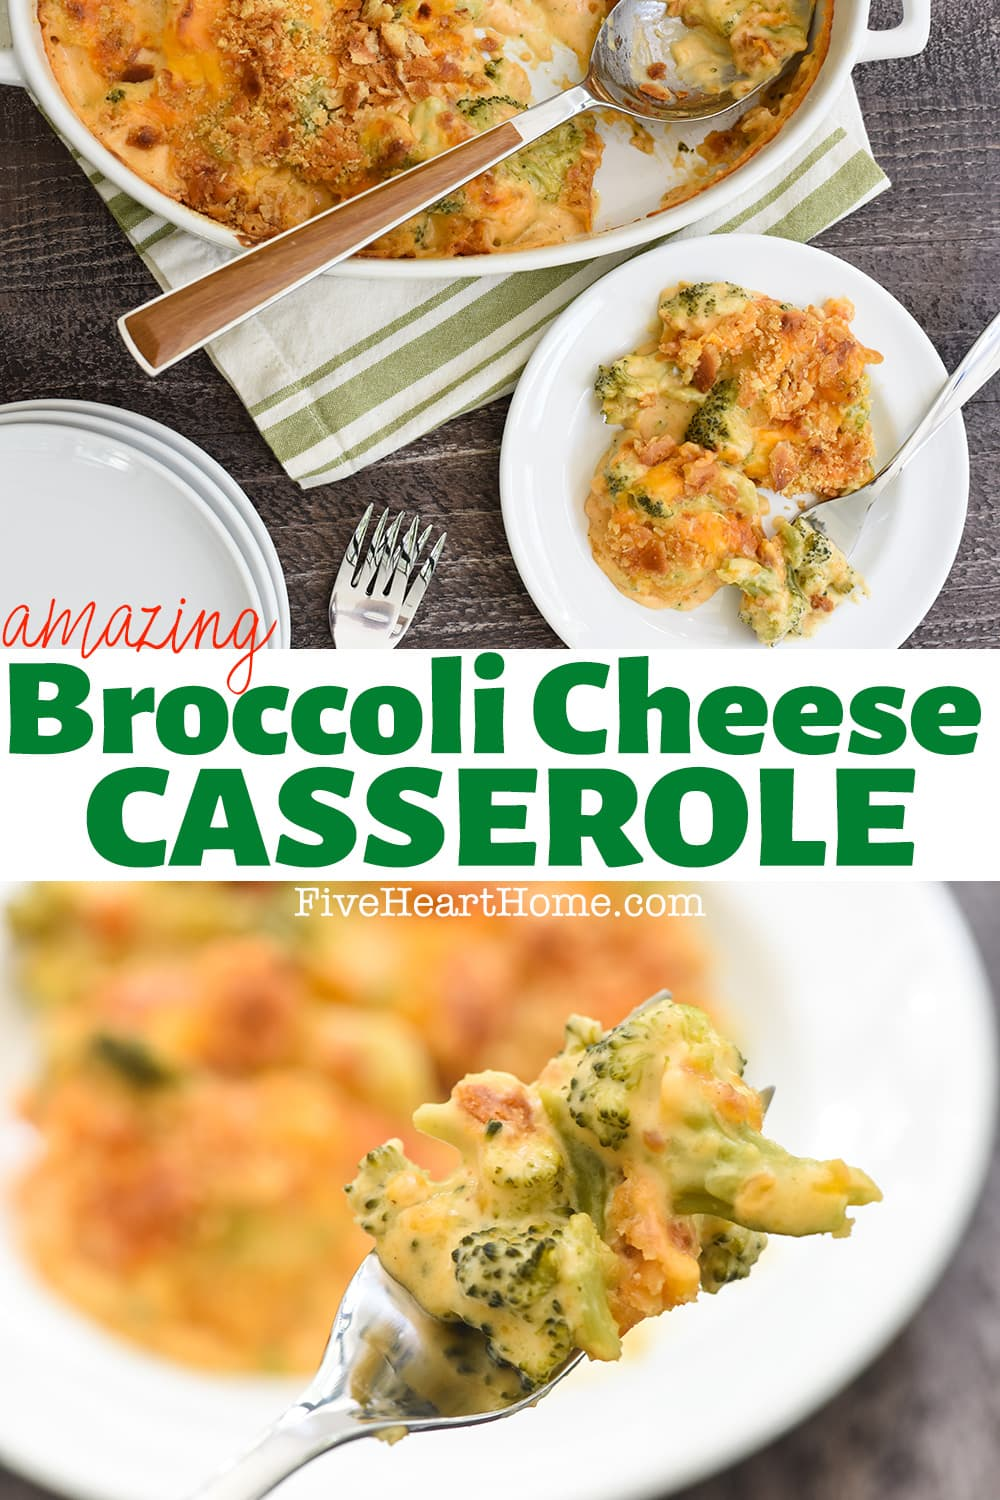 Broccoli Cheese Casserole ~ a comfort food classic side dish, this Broccoli Cheese Casserole recipe features frozen broccoli, an easy homemade cheese sauce, and is topped with a mixture of buttery cracker crumbs! | FiveHeartHome.com via @fivehearthome